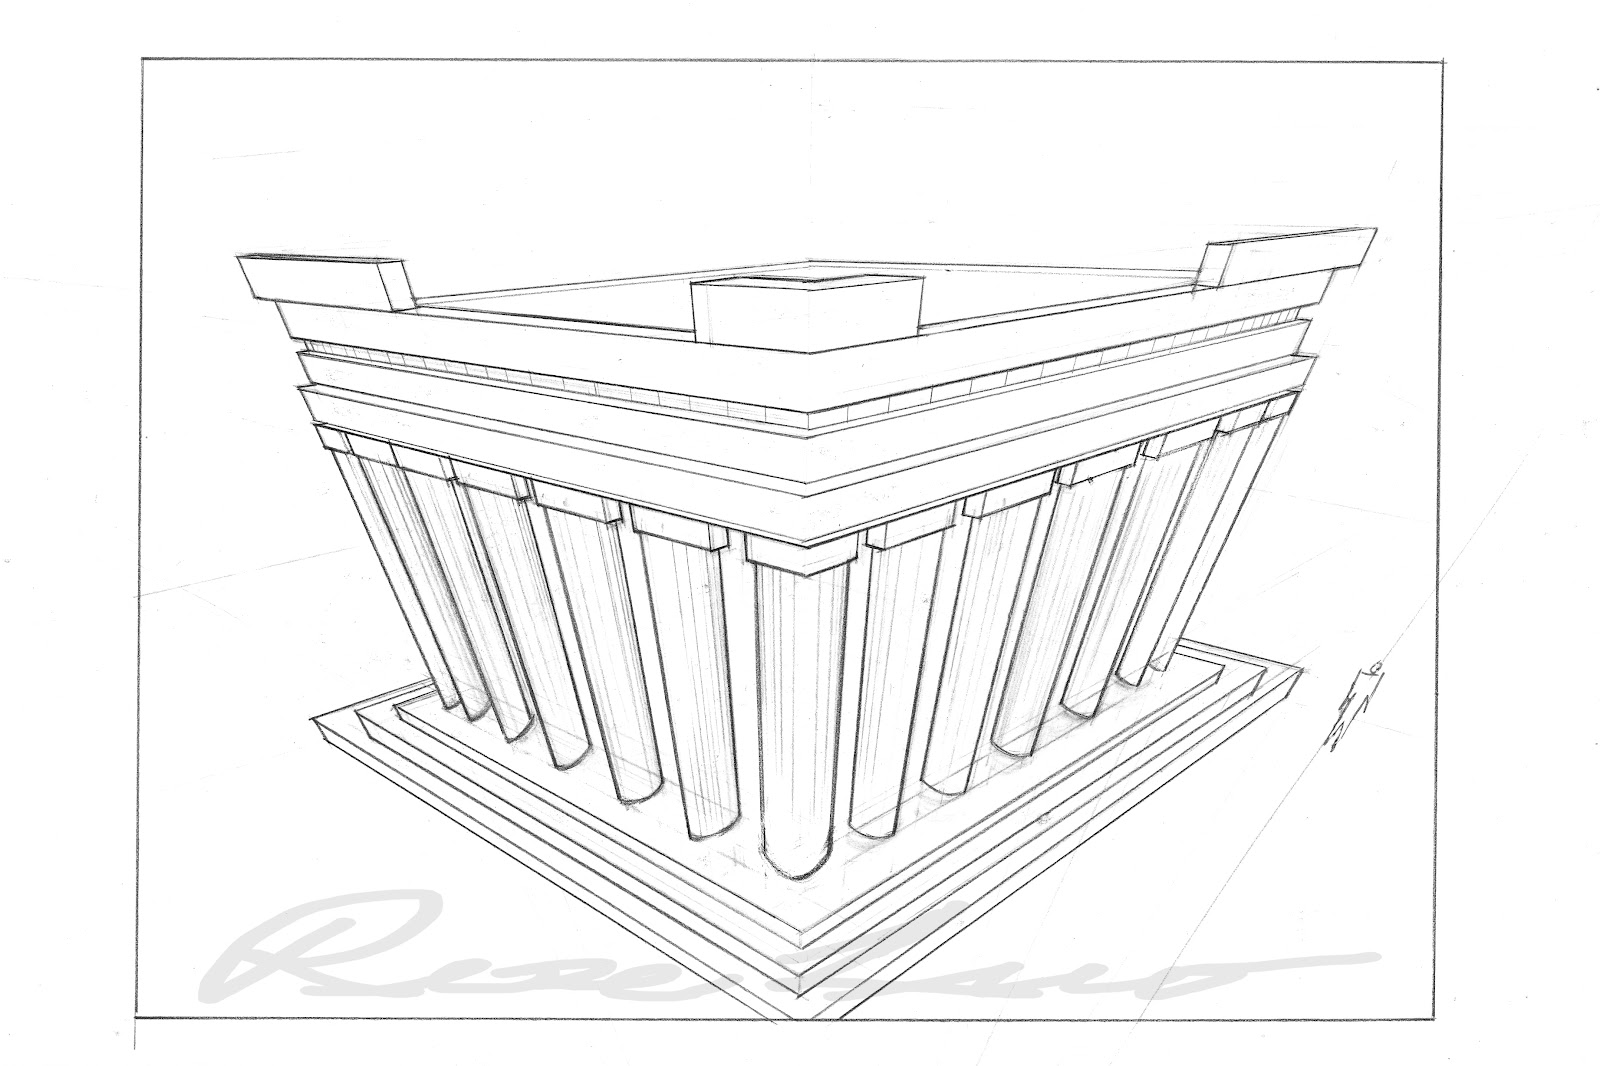 Rose Rong Luo S Production Blog 3 Point Perspective